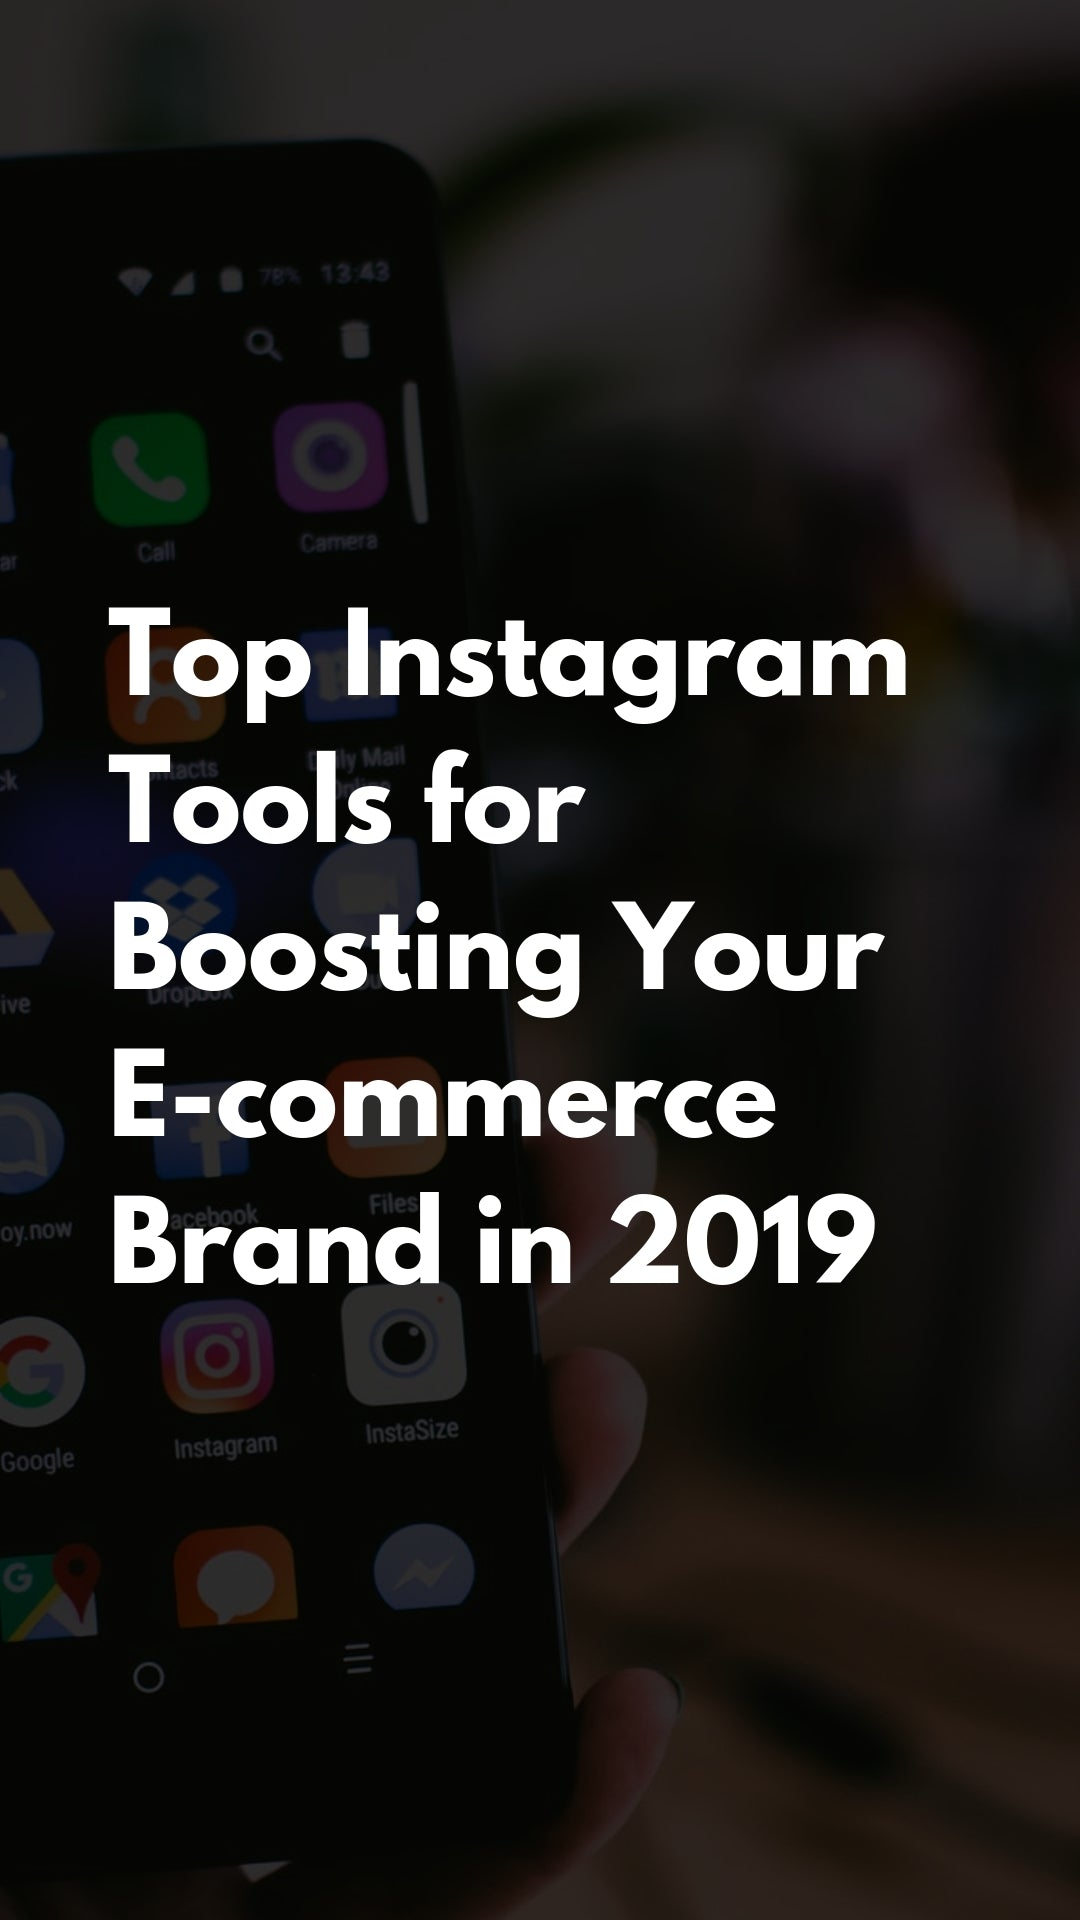 Top Instagram Tools for Boosting Your E-commerce Brand in 2019